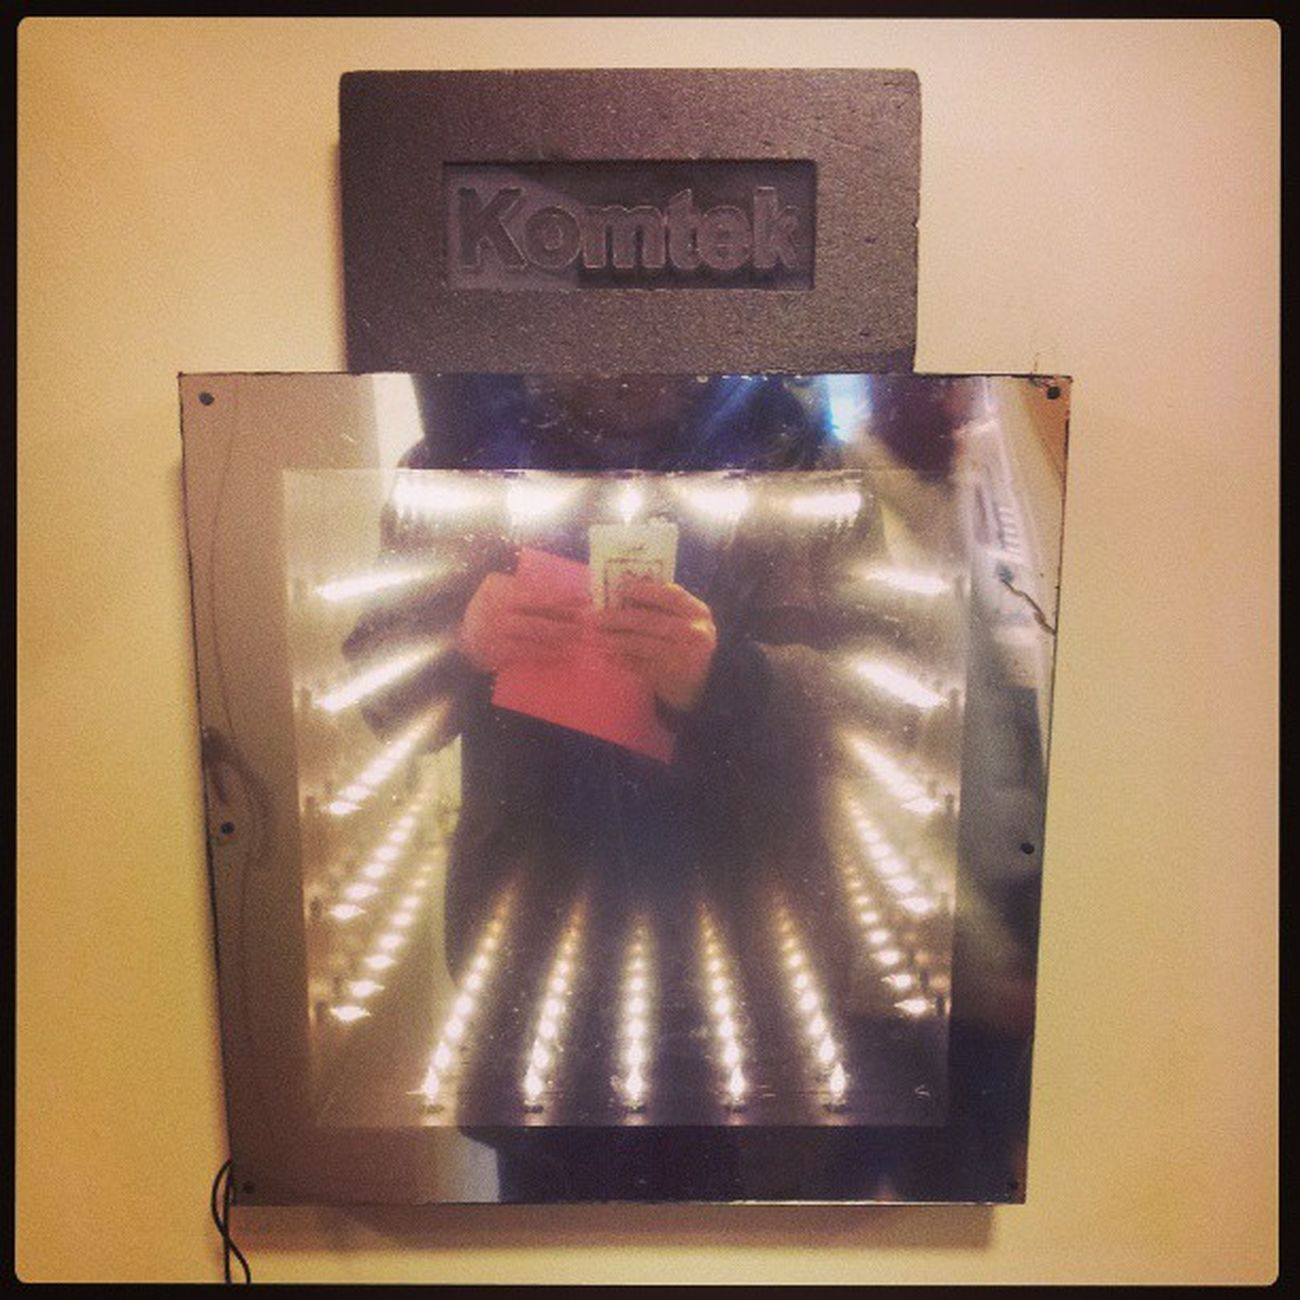 Want to light your oven? Komtek